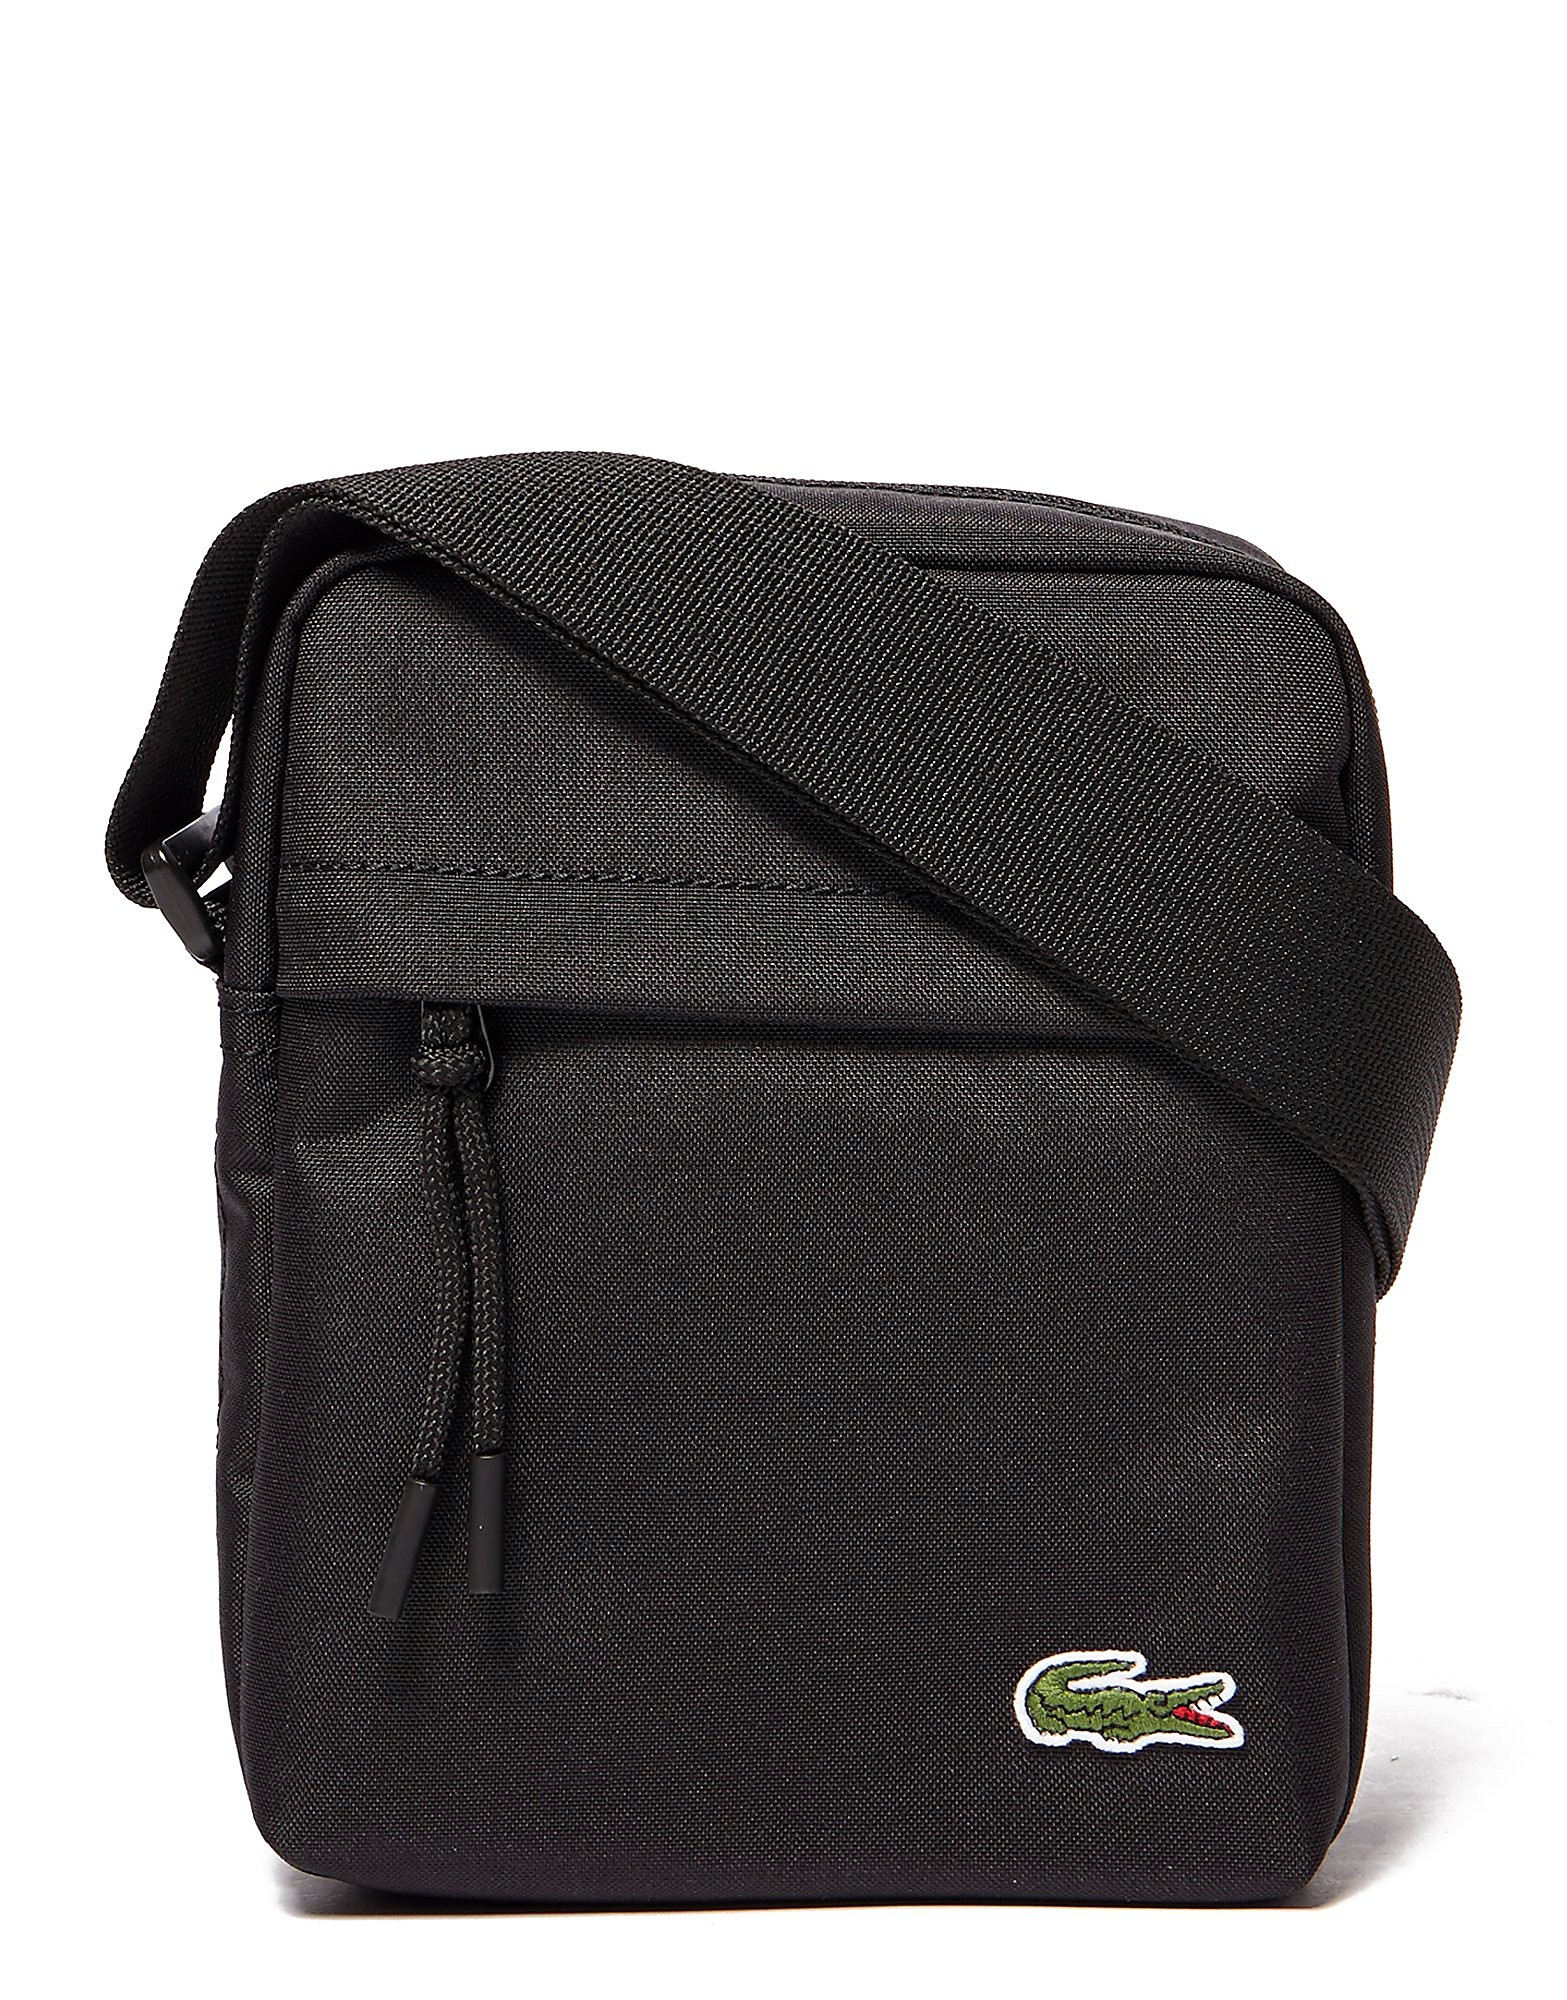 Lacoste Small Items Pouch Bag